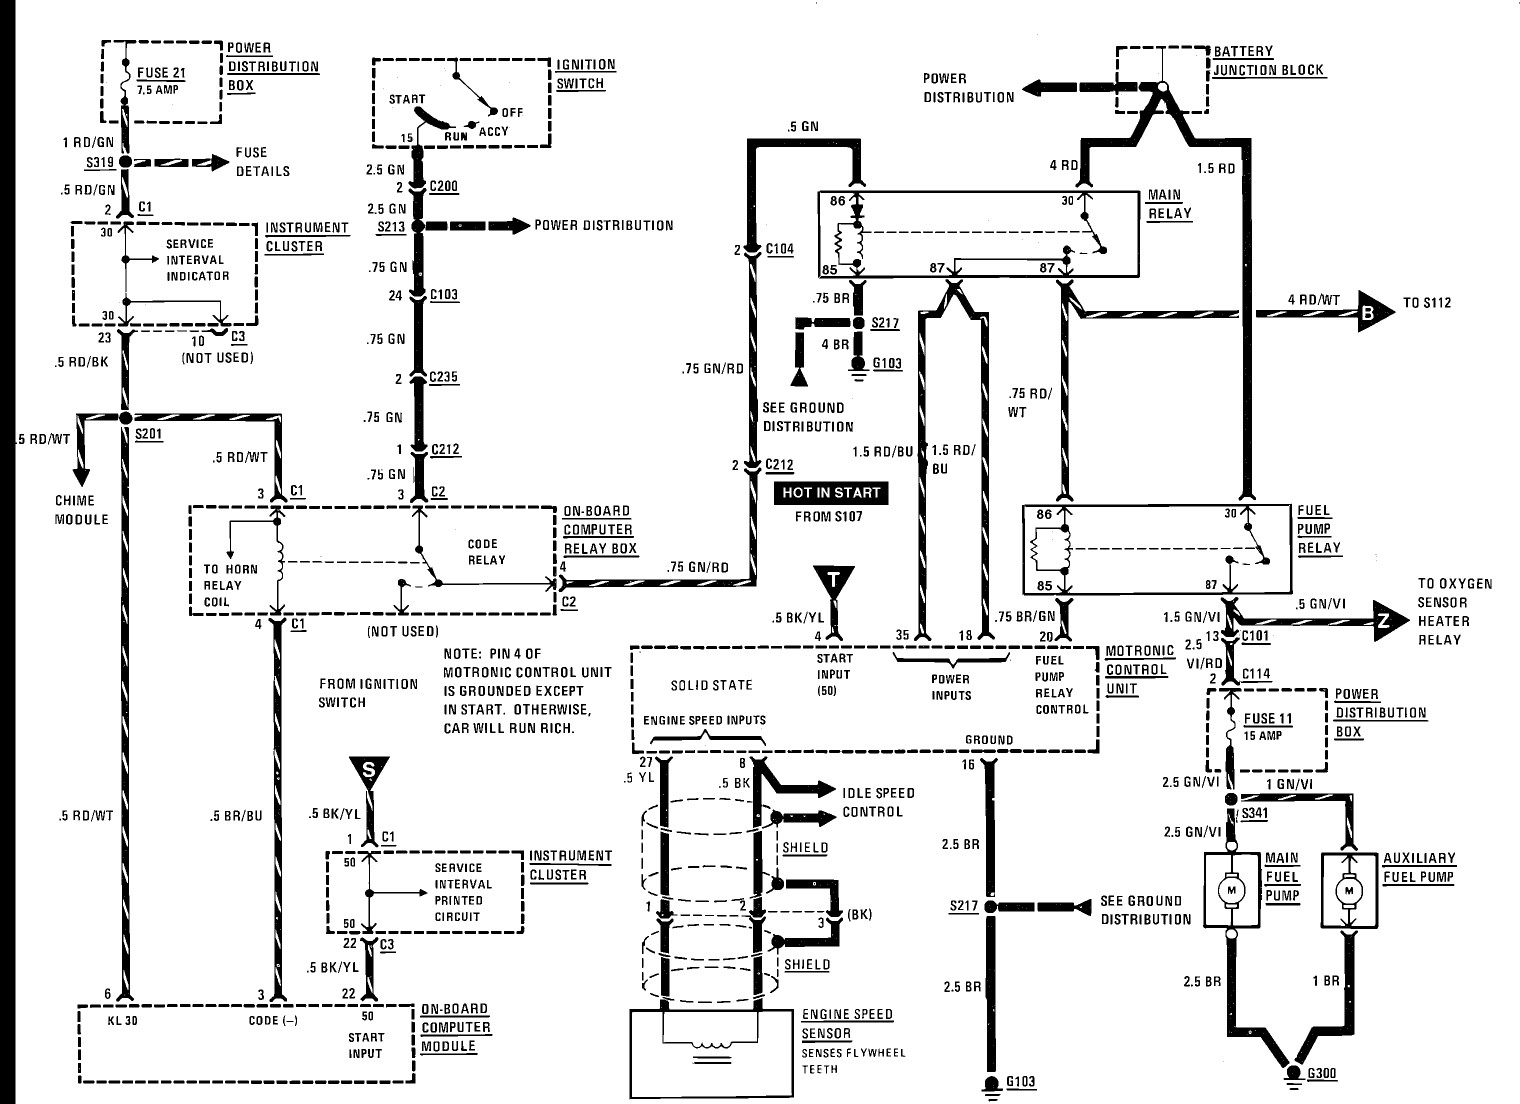 Bmw 325xi Electrical Diagram - Product Wiring Diagrams •